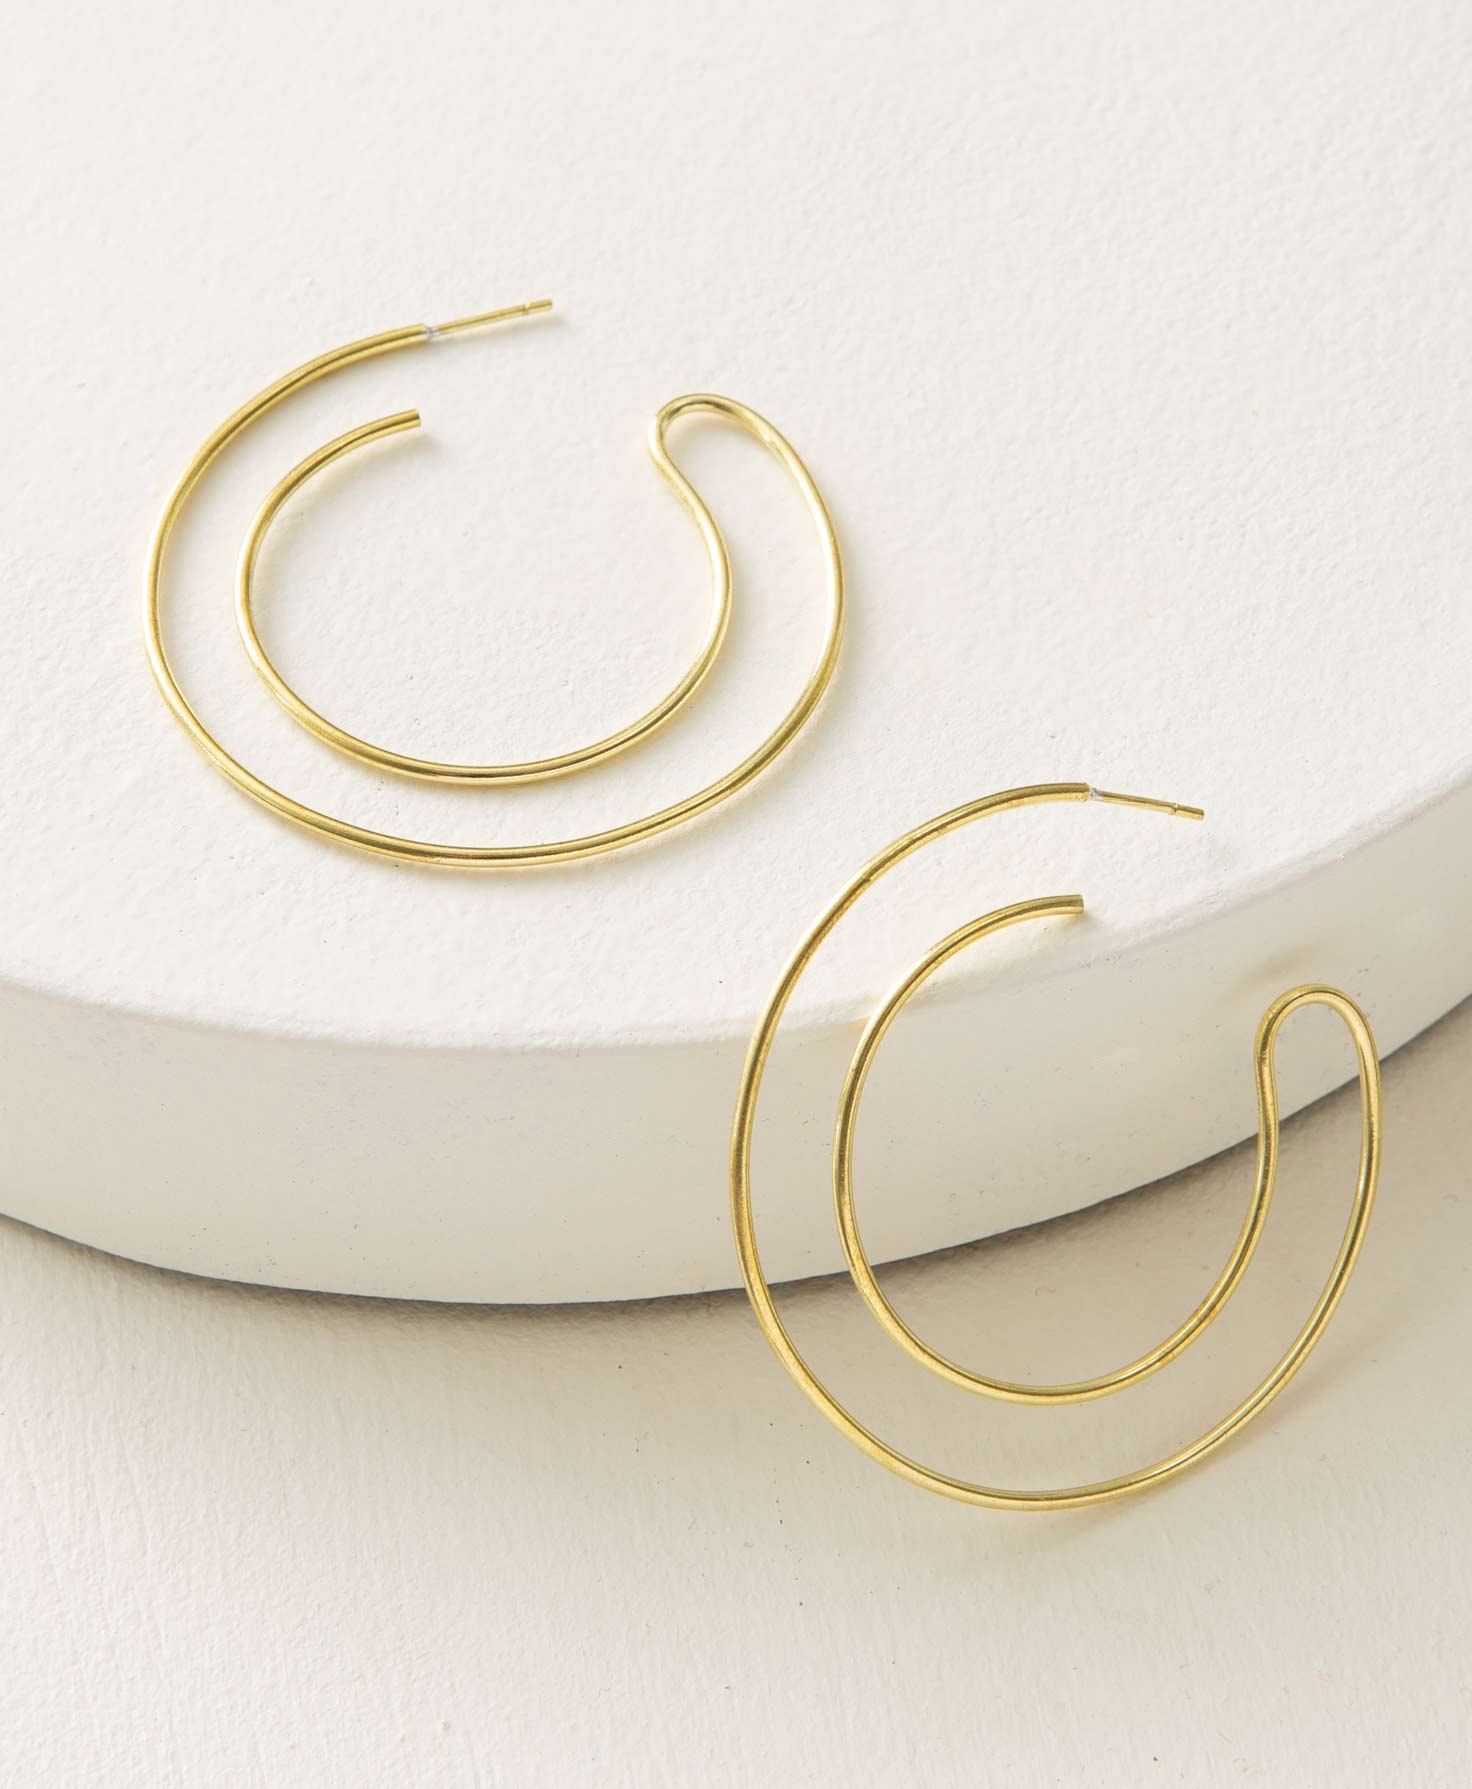 The Serendipity Hoops rest on a white platform. The earrings have a double hoop design, but are composed of only one thin brass tube curved in on itself. The brass tube curves down and around in a classic hoop shape, then curves up and back around toward the ear post, forming a smaller hoop shape within the first hoop. The earrings have a shiny finish and a modern, lightweight look.